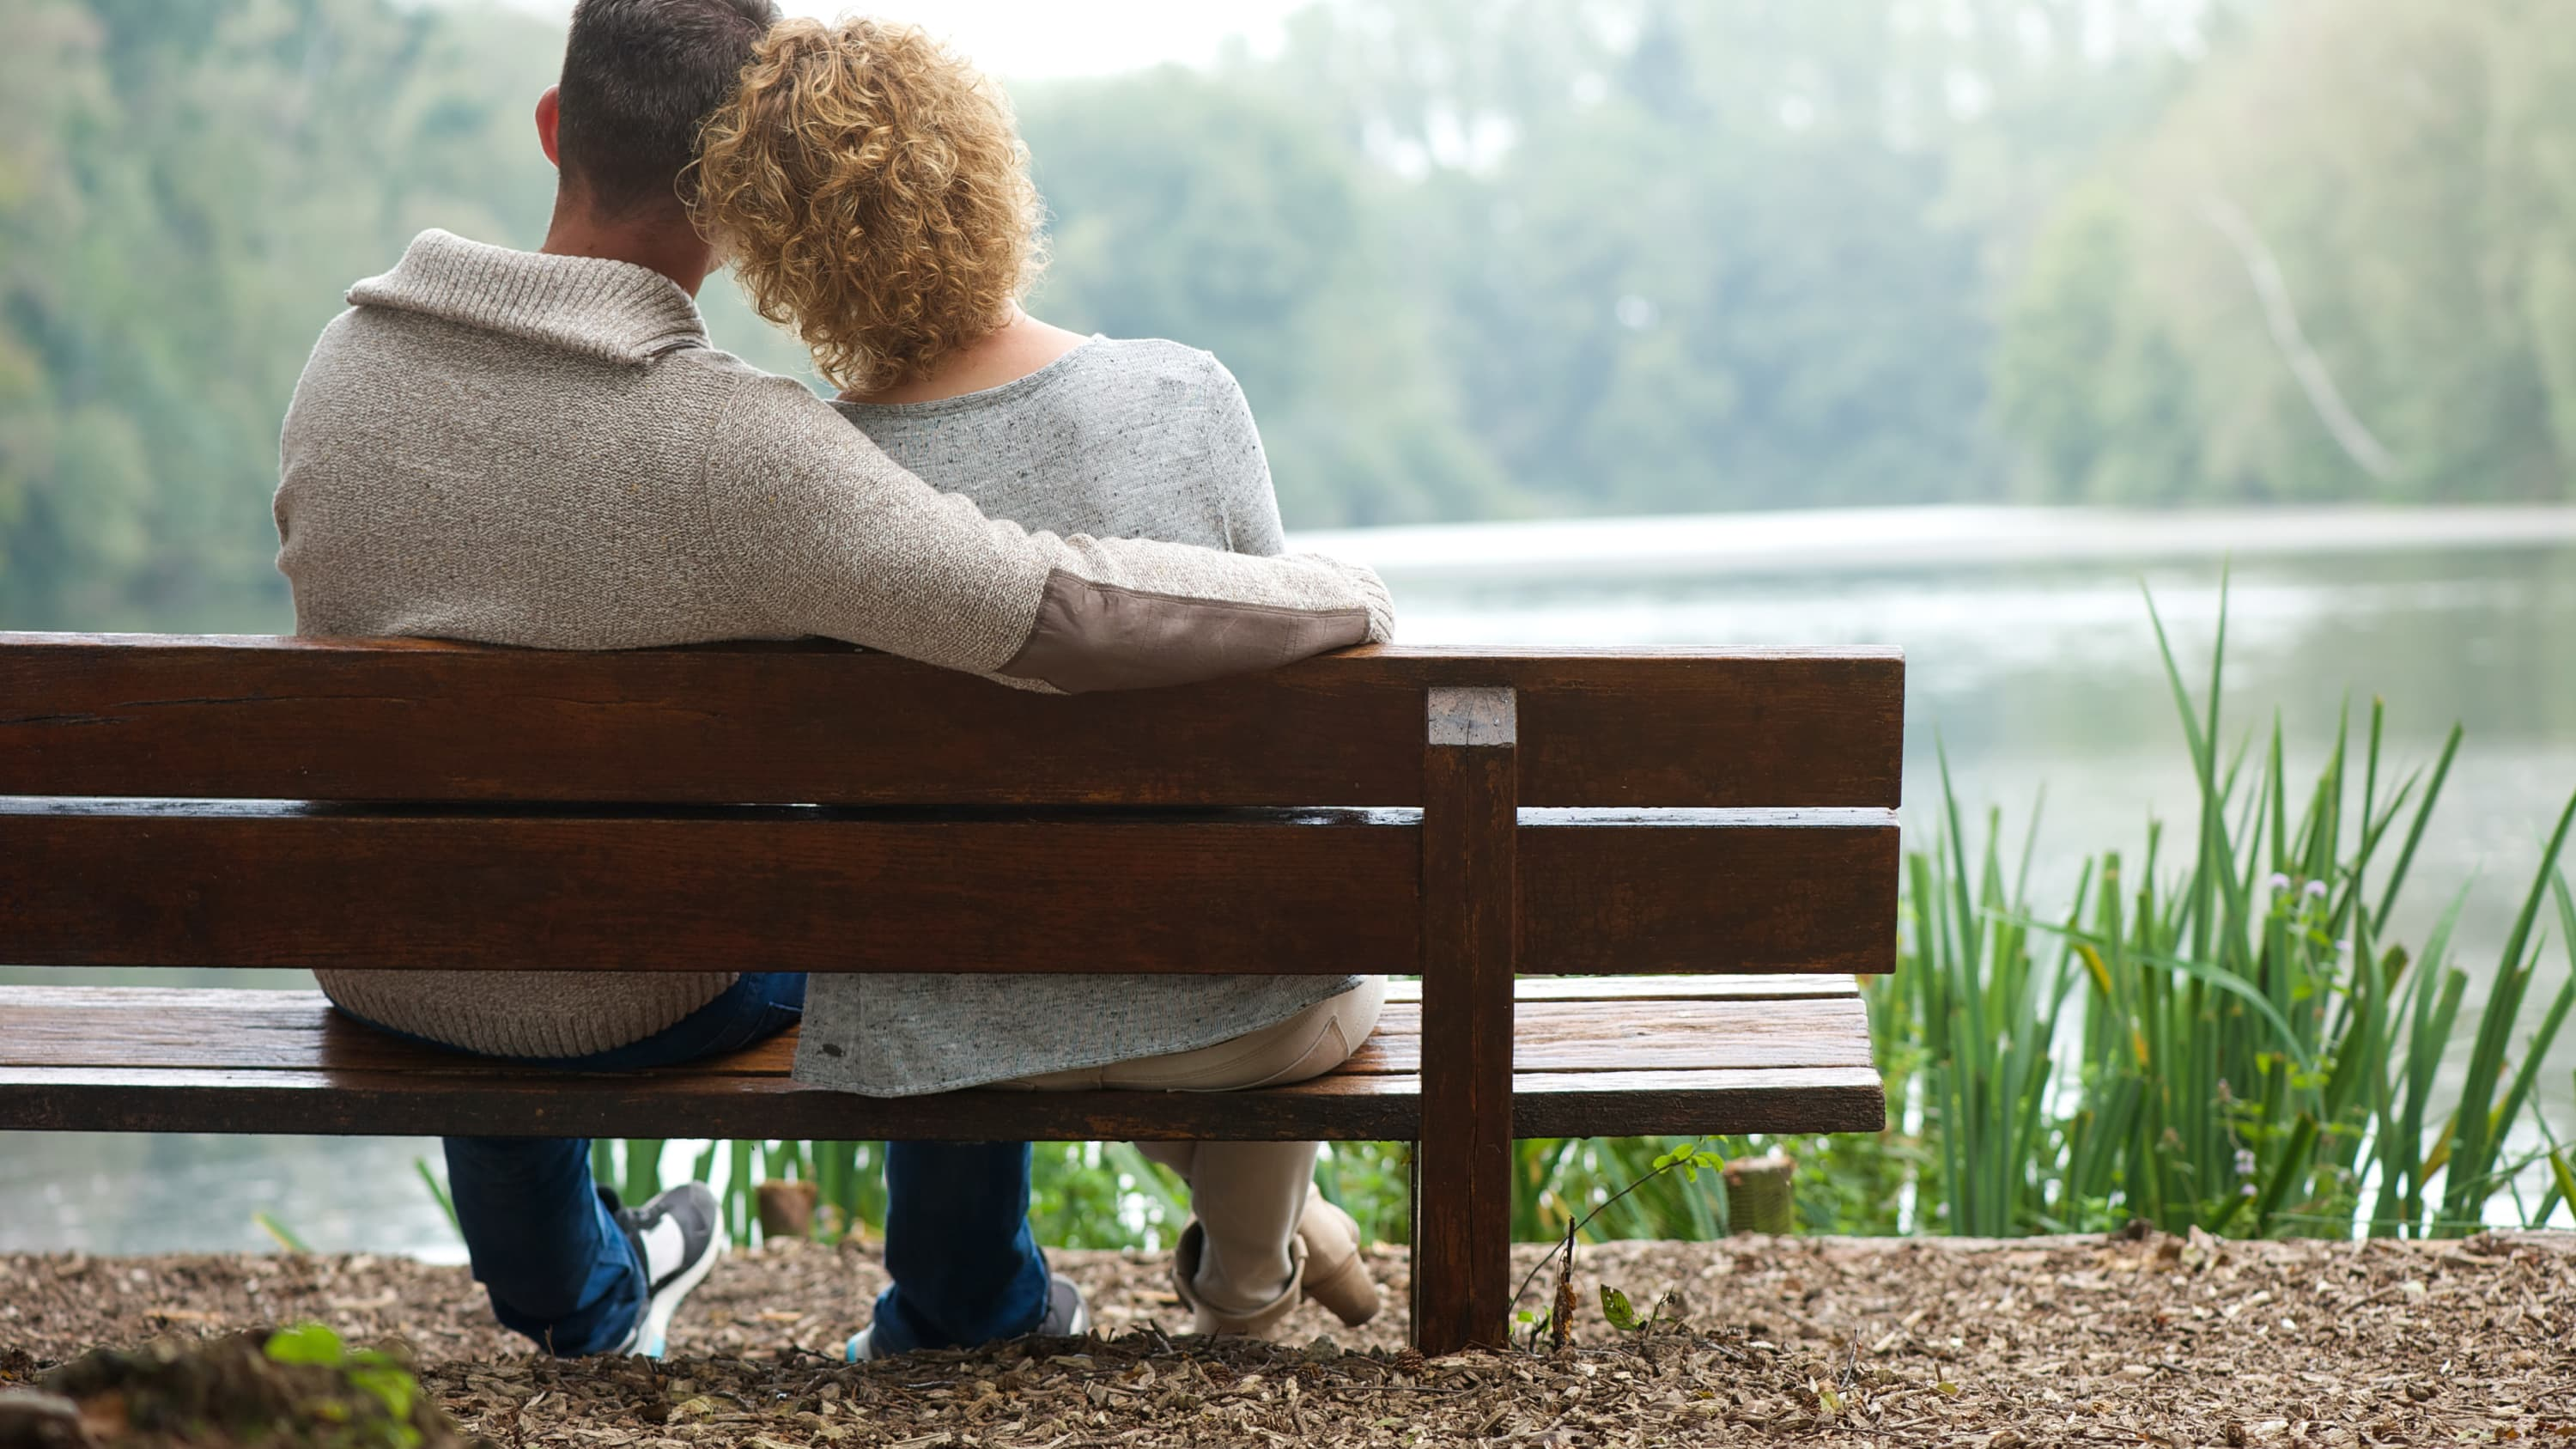 A couple sits and thinks on a park bench, considering female infertility